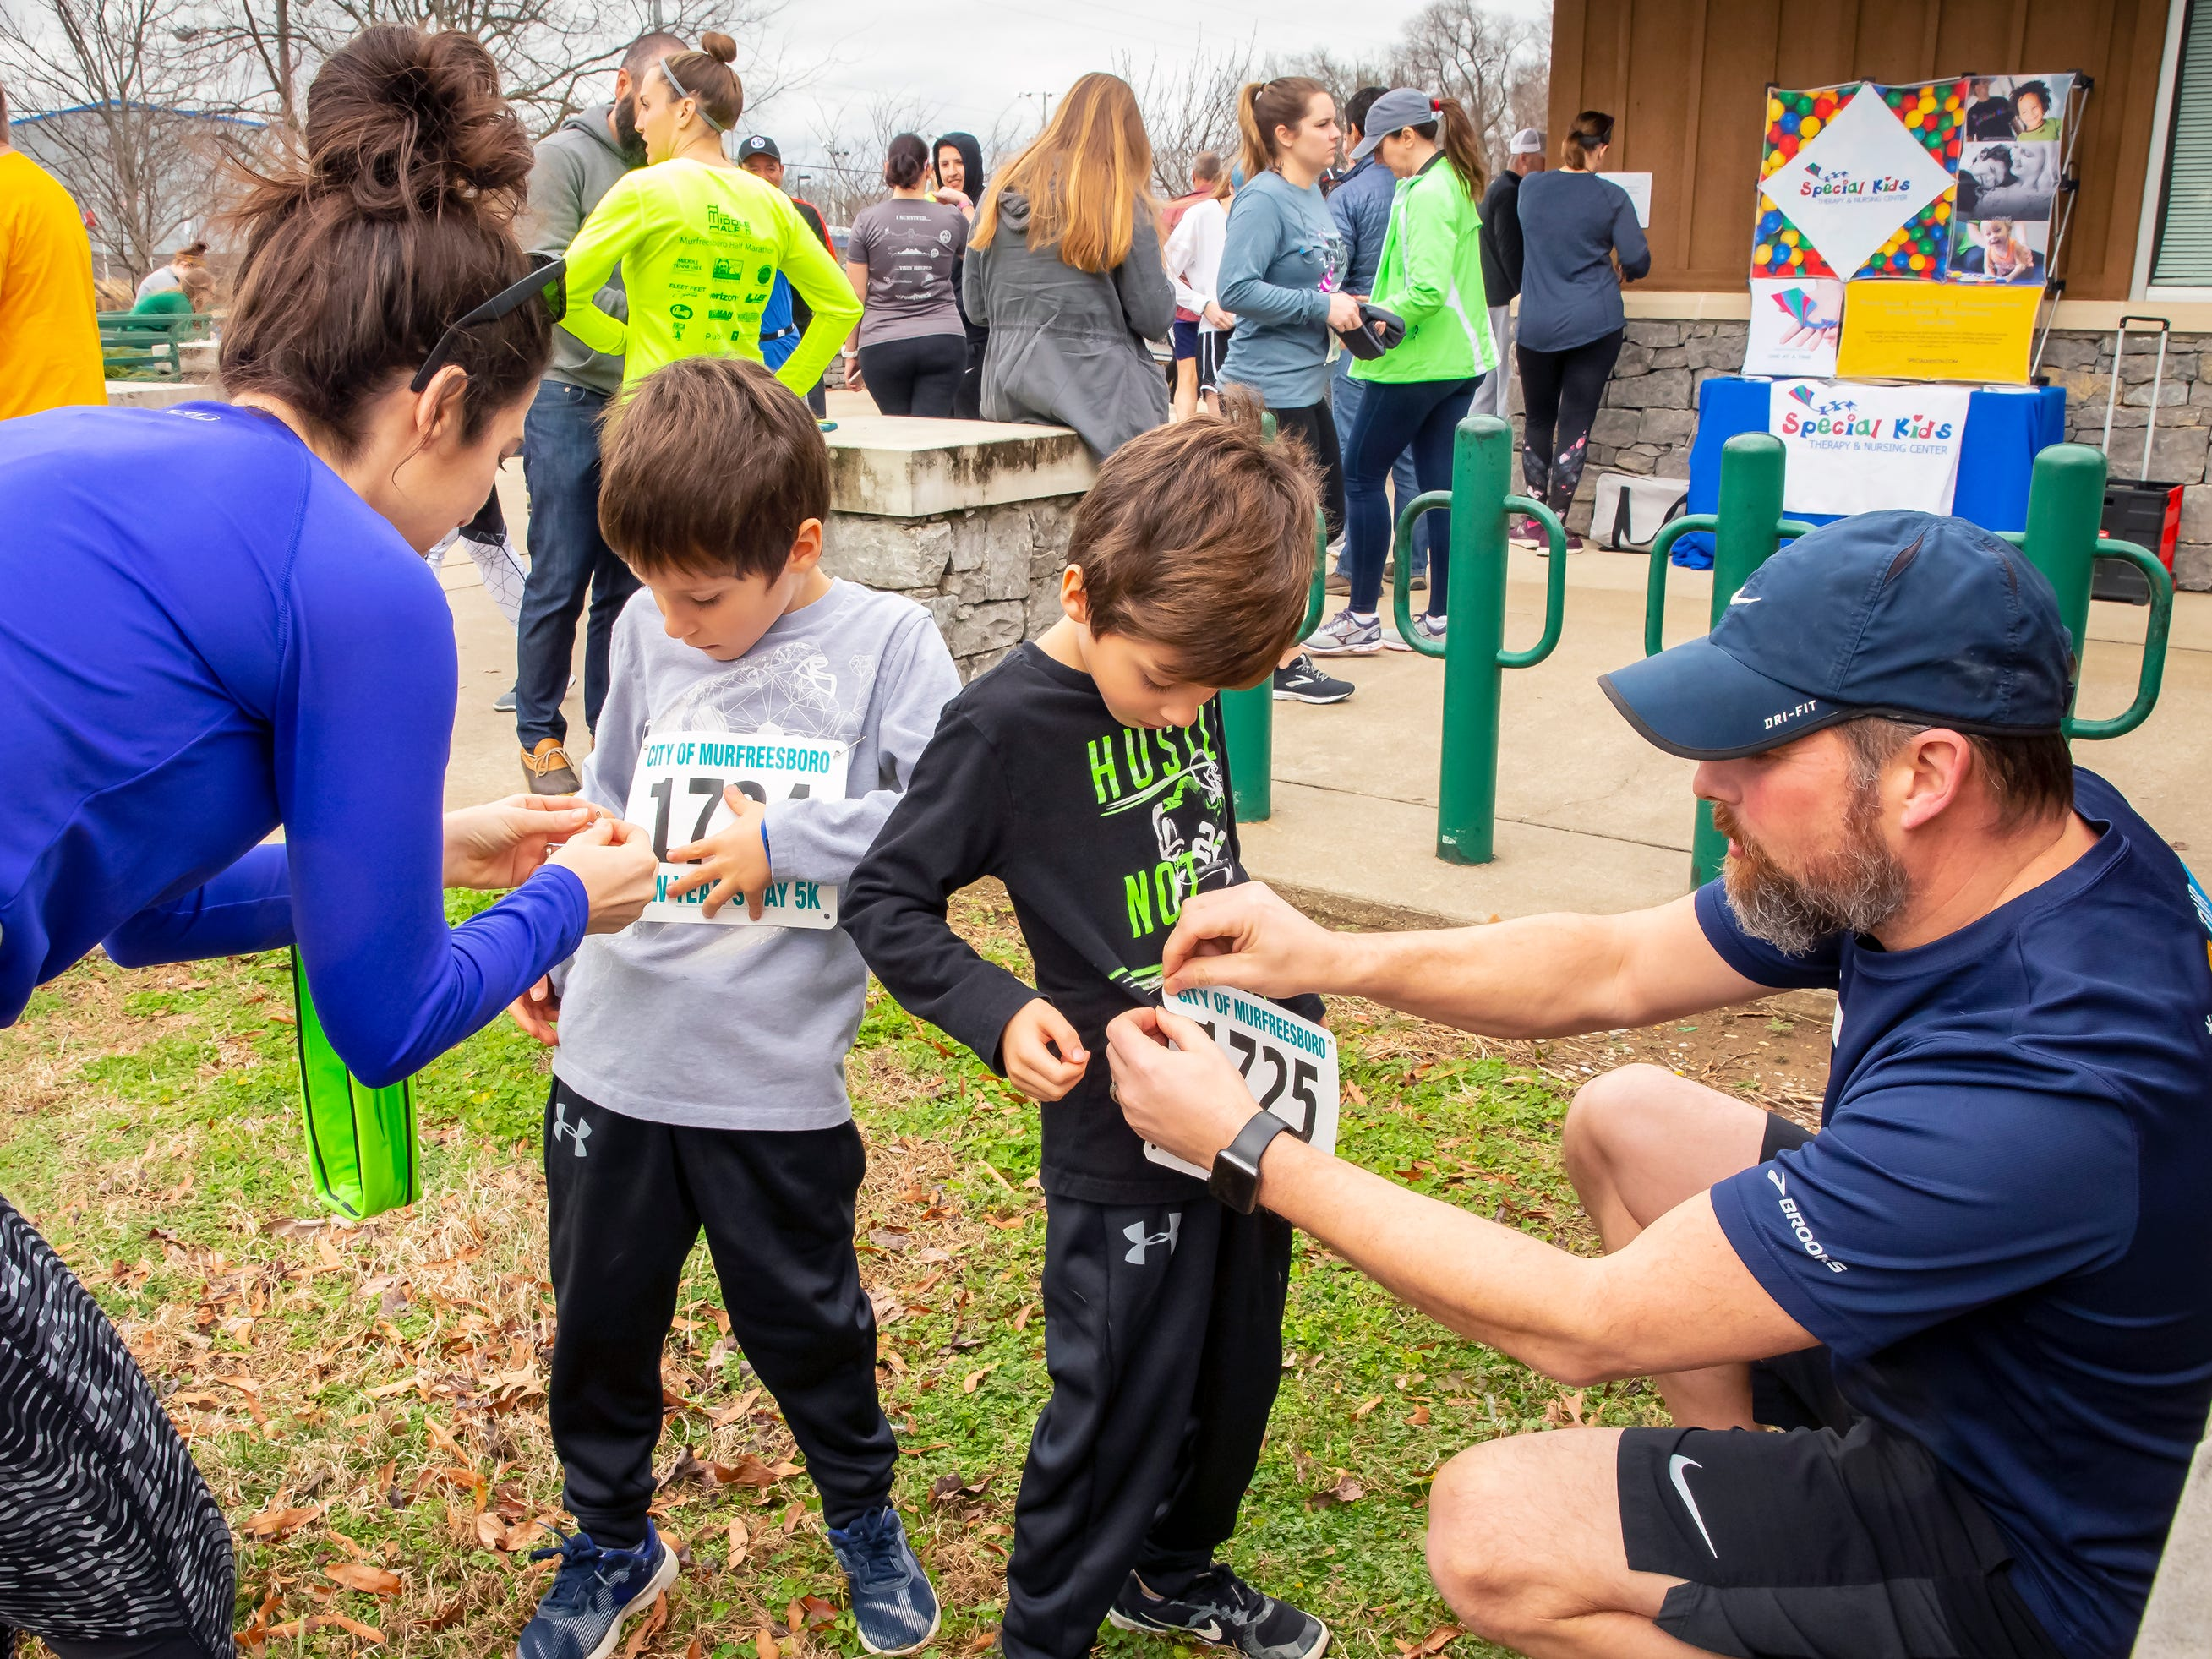 The Park family, Brandi, Brian, Aiden and Austin prepare for the New Year's Day 5K event held at Old Fork Park on Jan. 1, 2019.